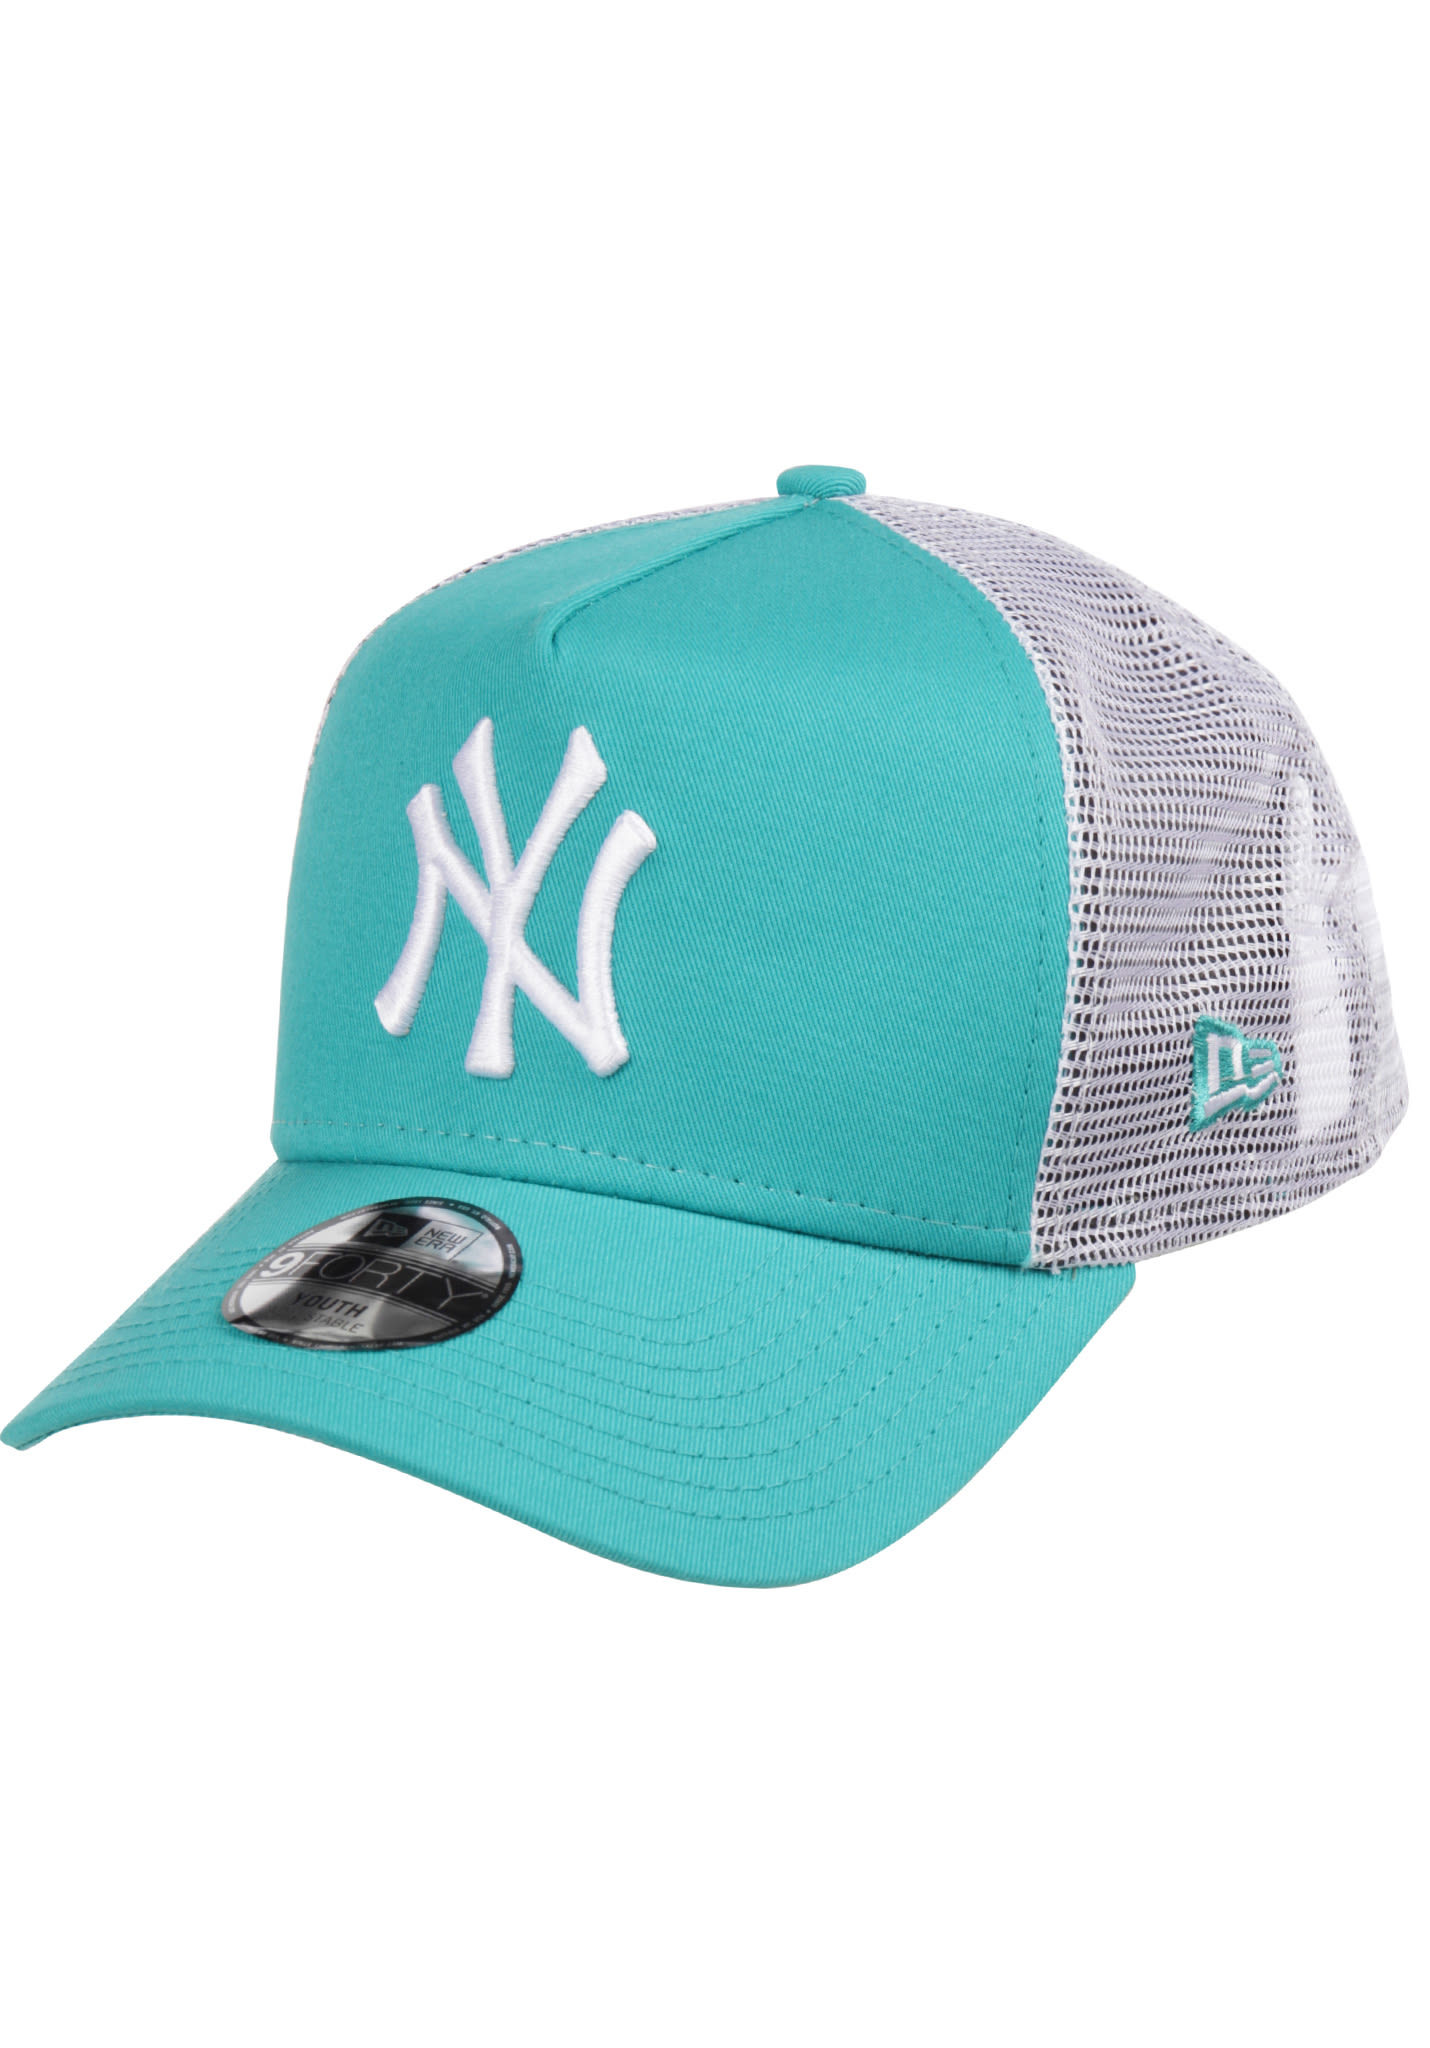 a1b90de861c772 NEW Era New York Yankees - Trucker Cap - Blue - Planet Sports